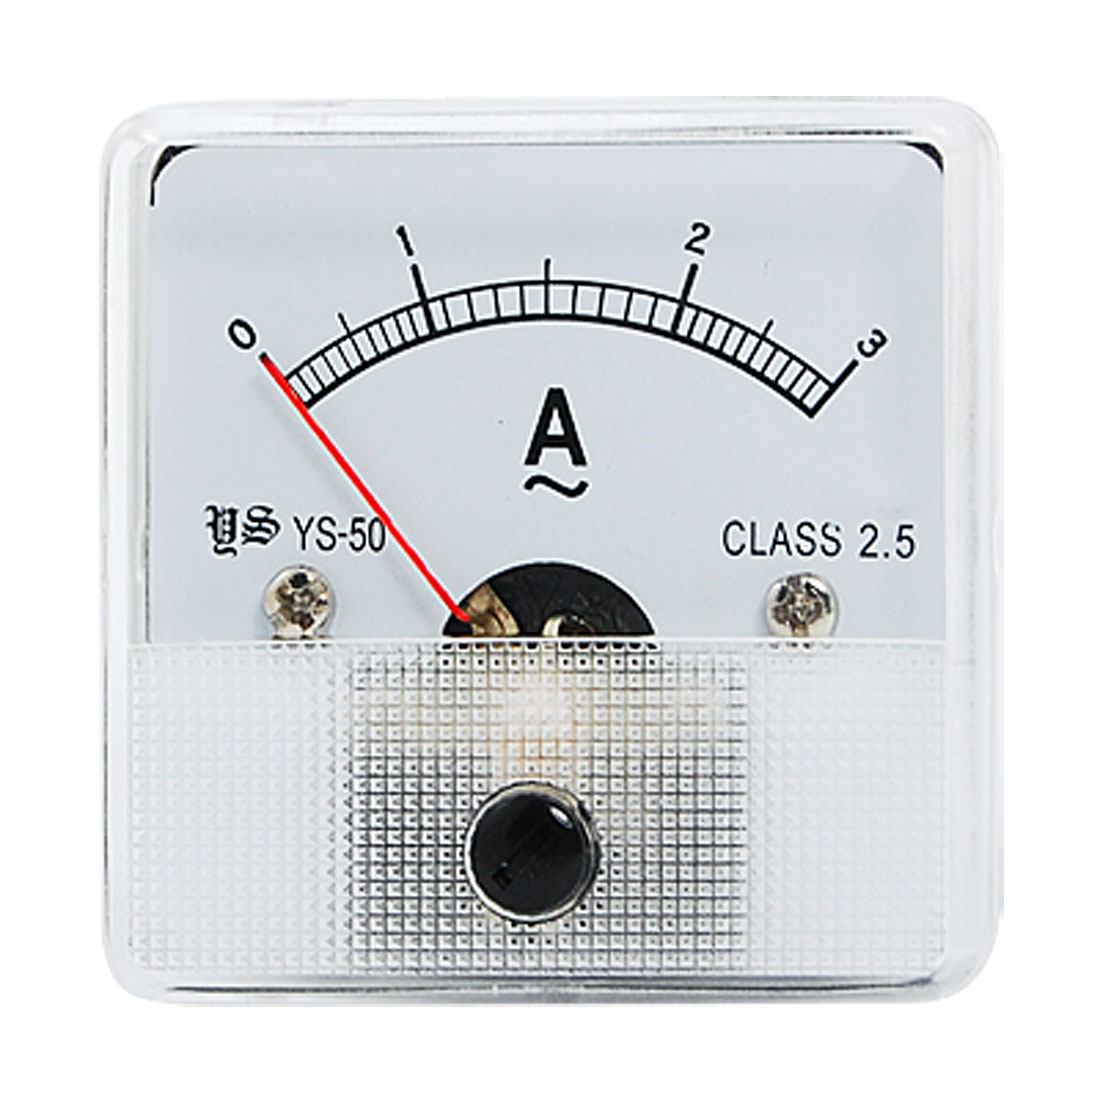 AC 0-3A Class 2.5 Accuracy Analog Amperemeter Panel Meter Gauge